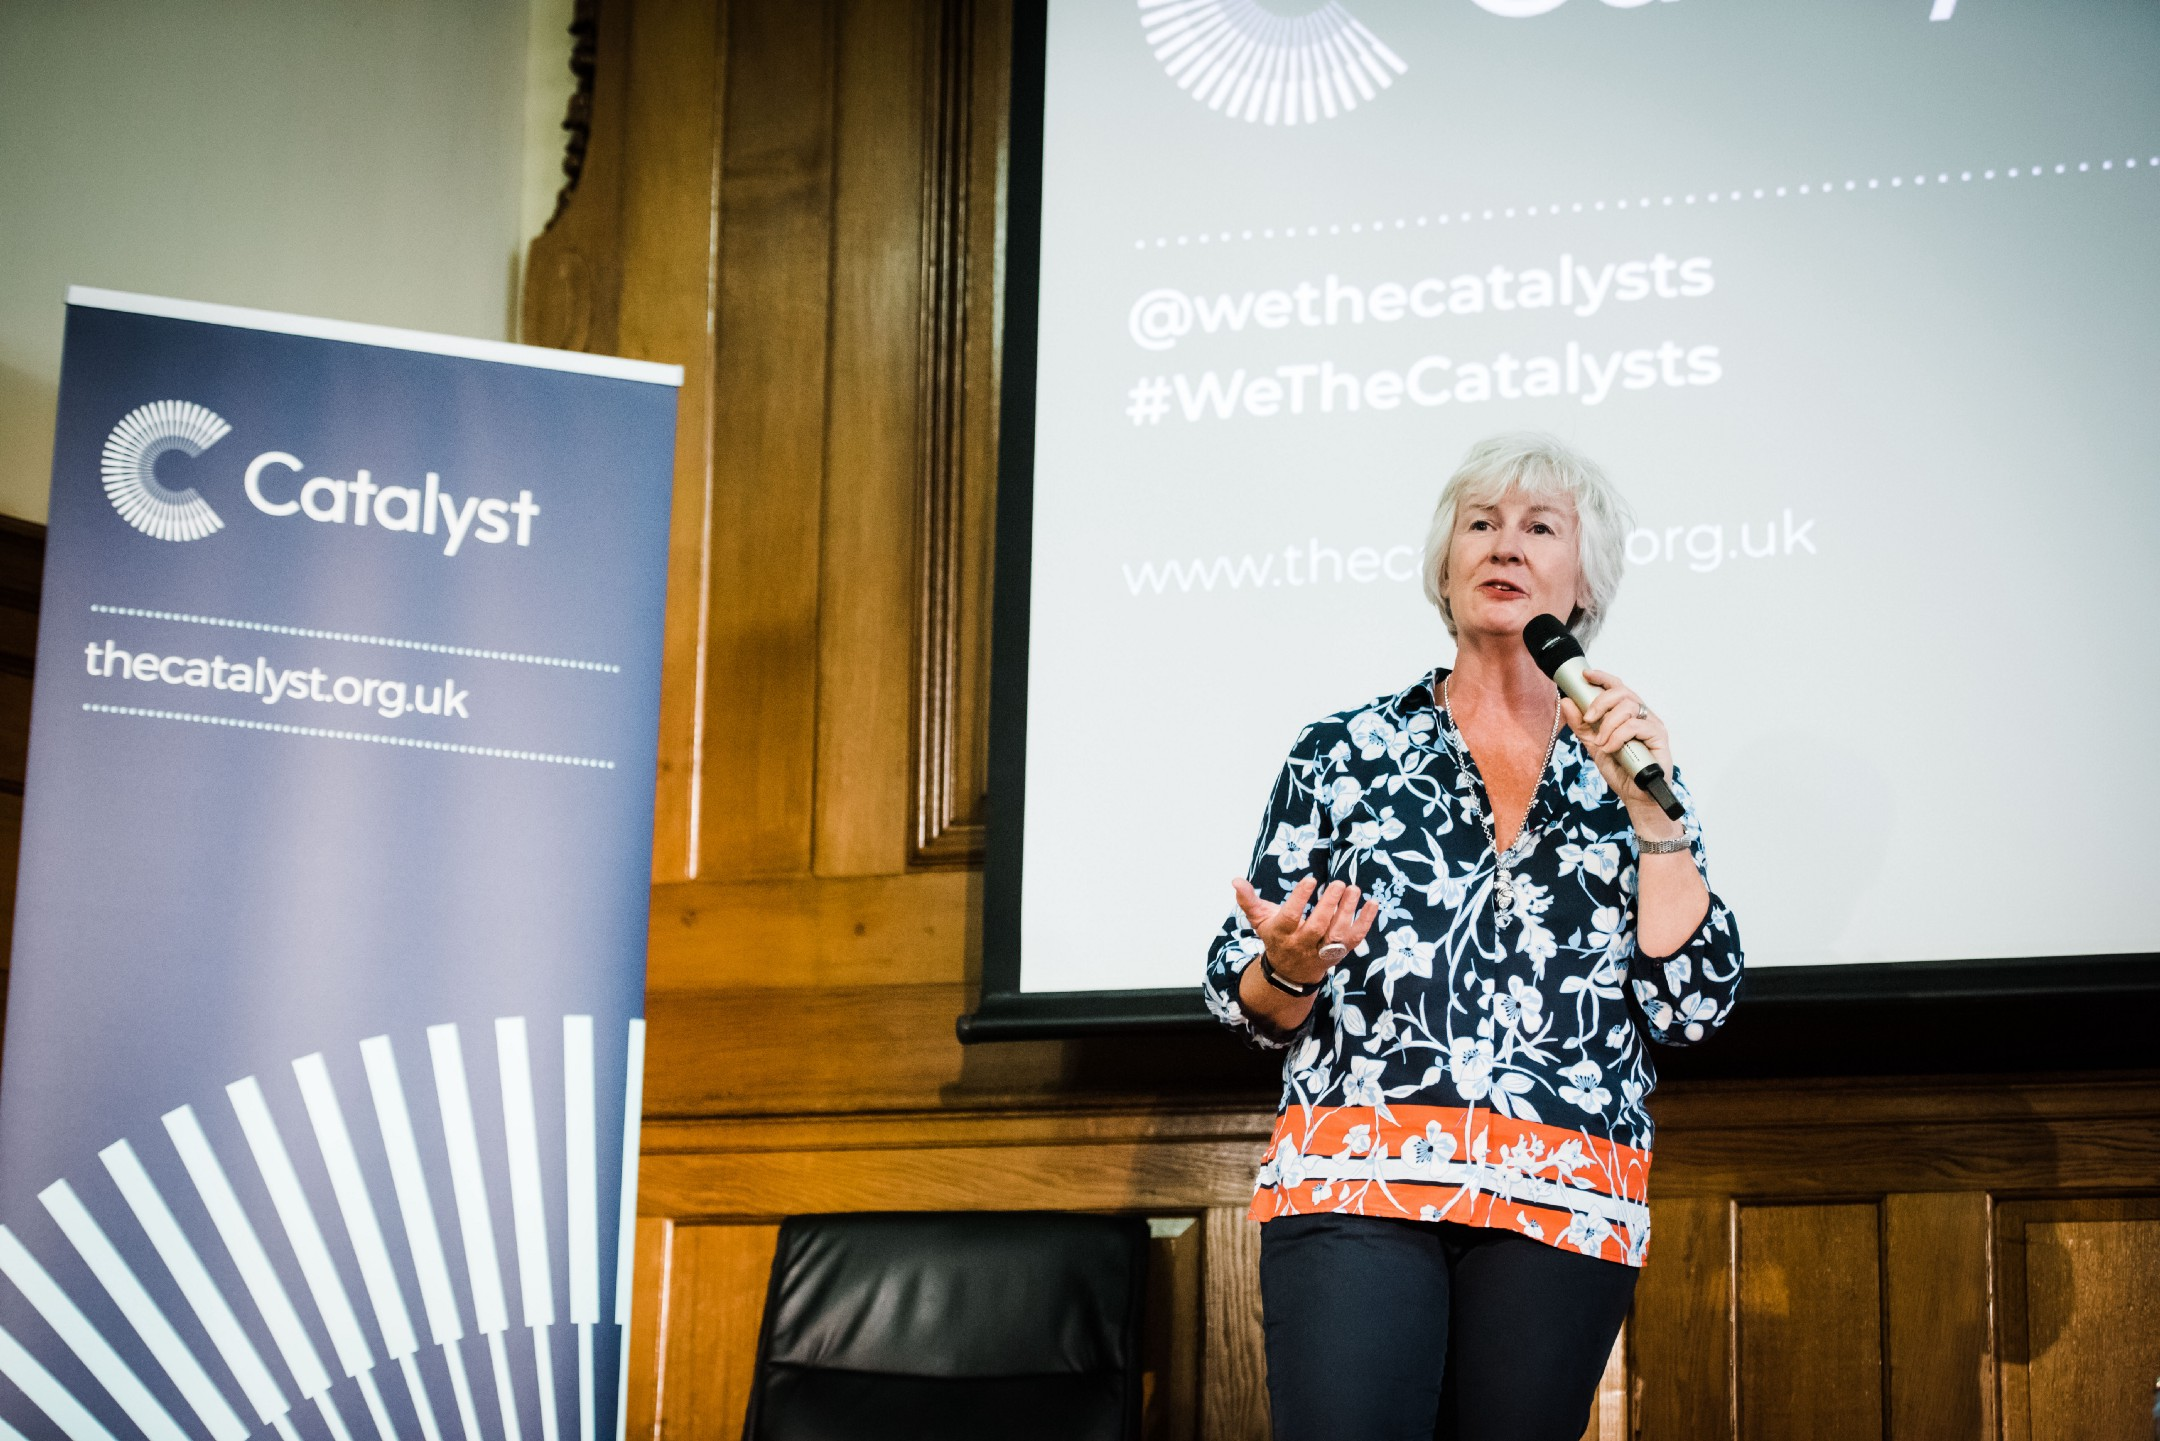 Annika Small, Co-Founder of the Catalyst, at the inaugural gathering of The Catalyst